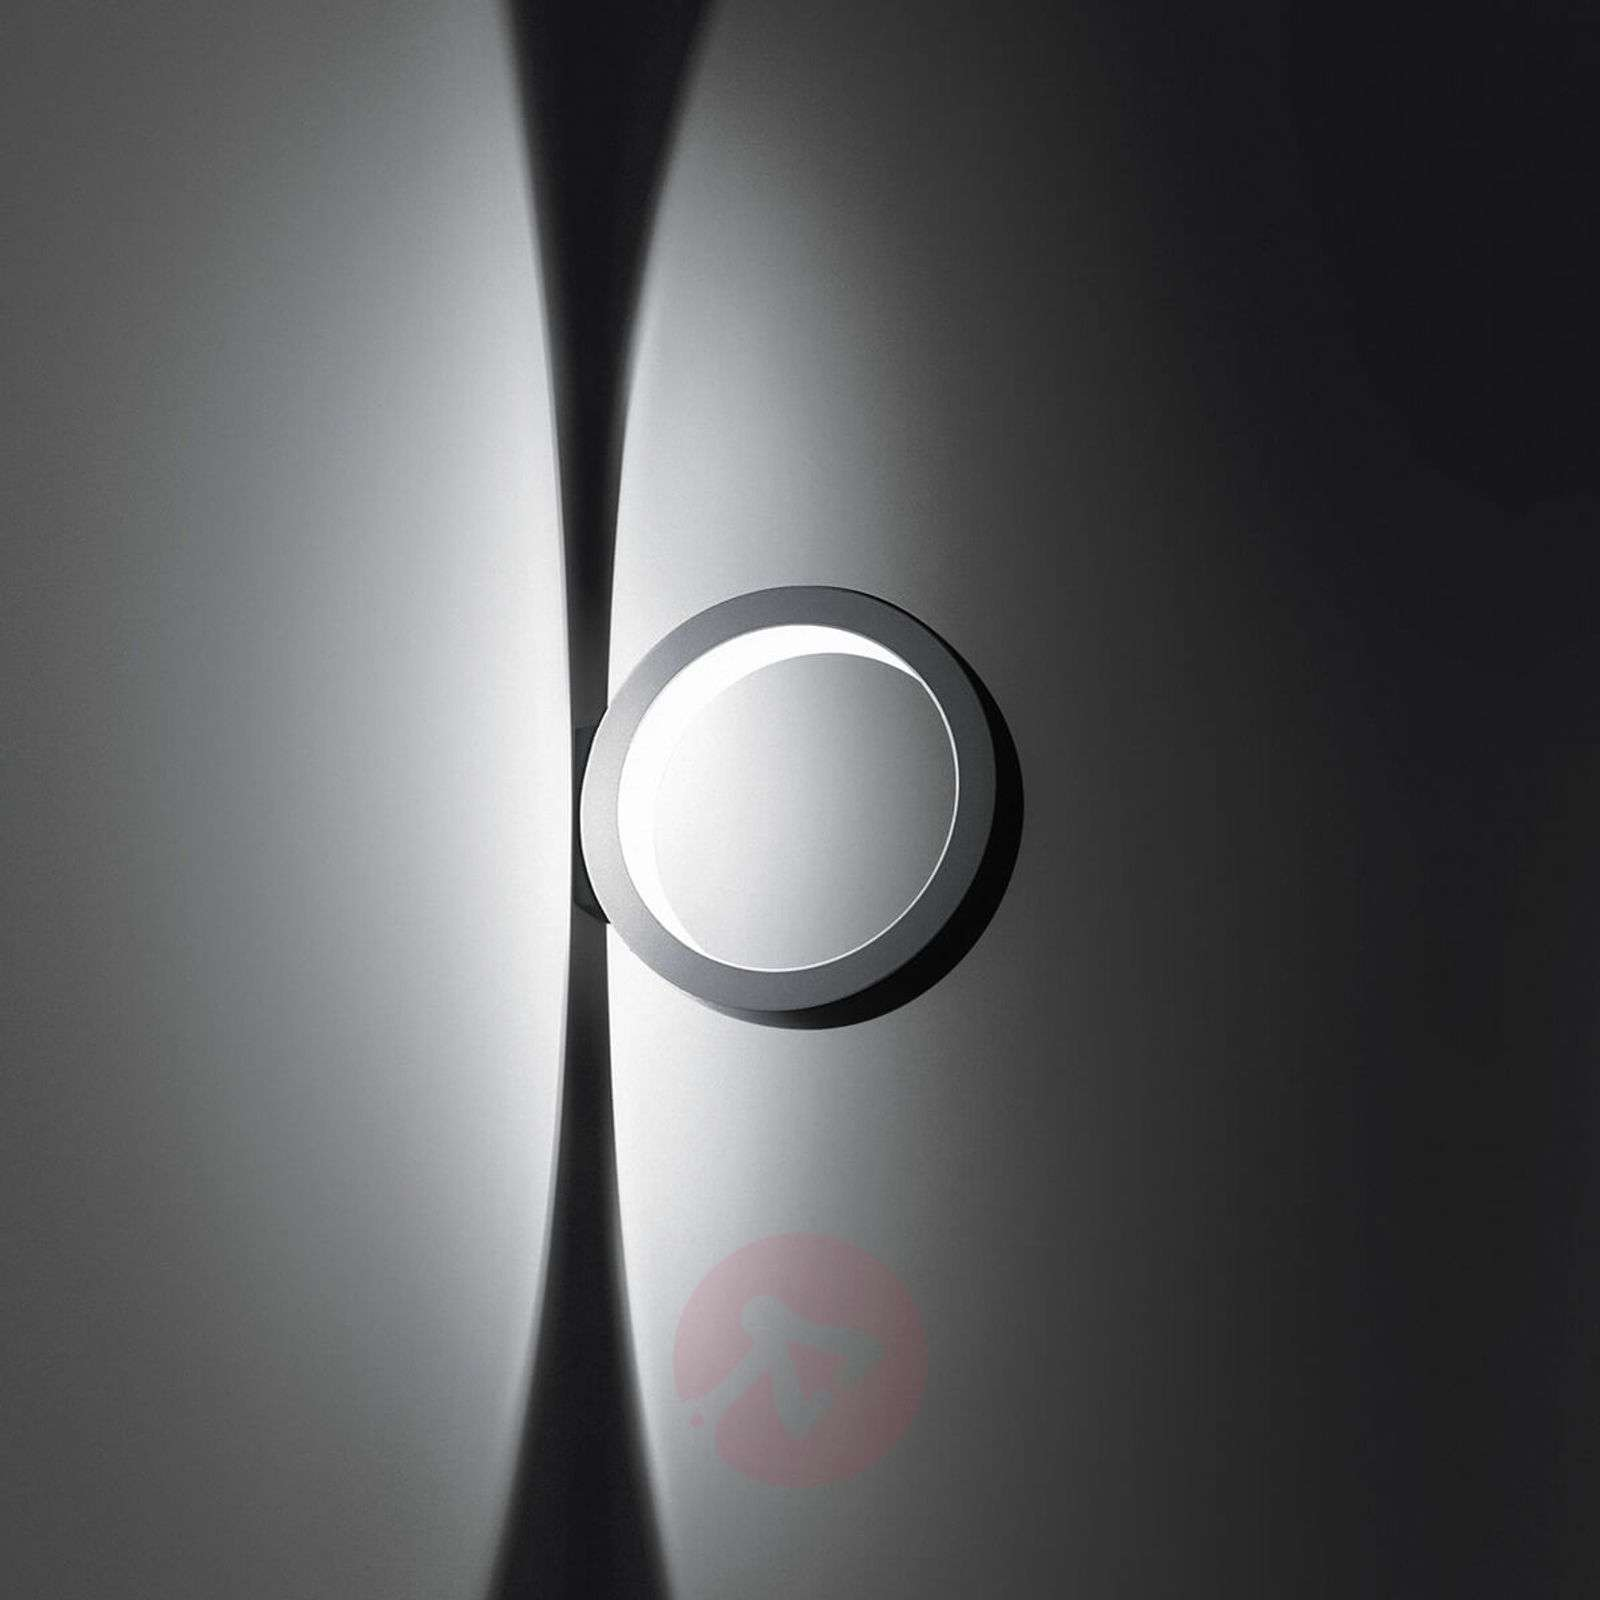 Round designer wall light Assolo, dimmable LEDs-2028018-01